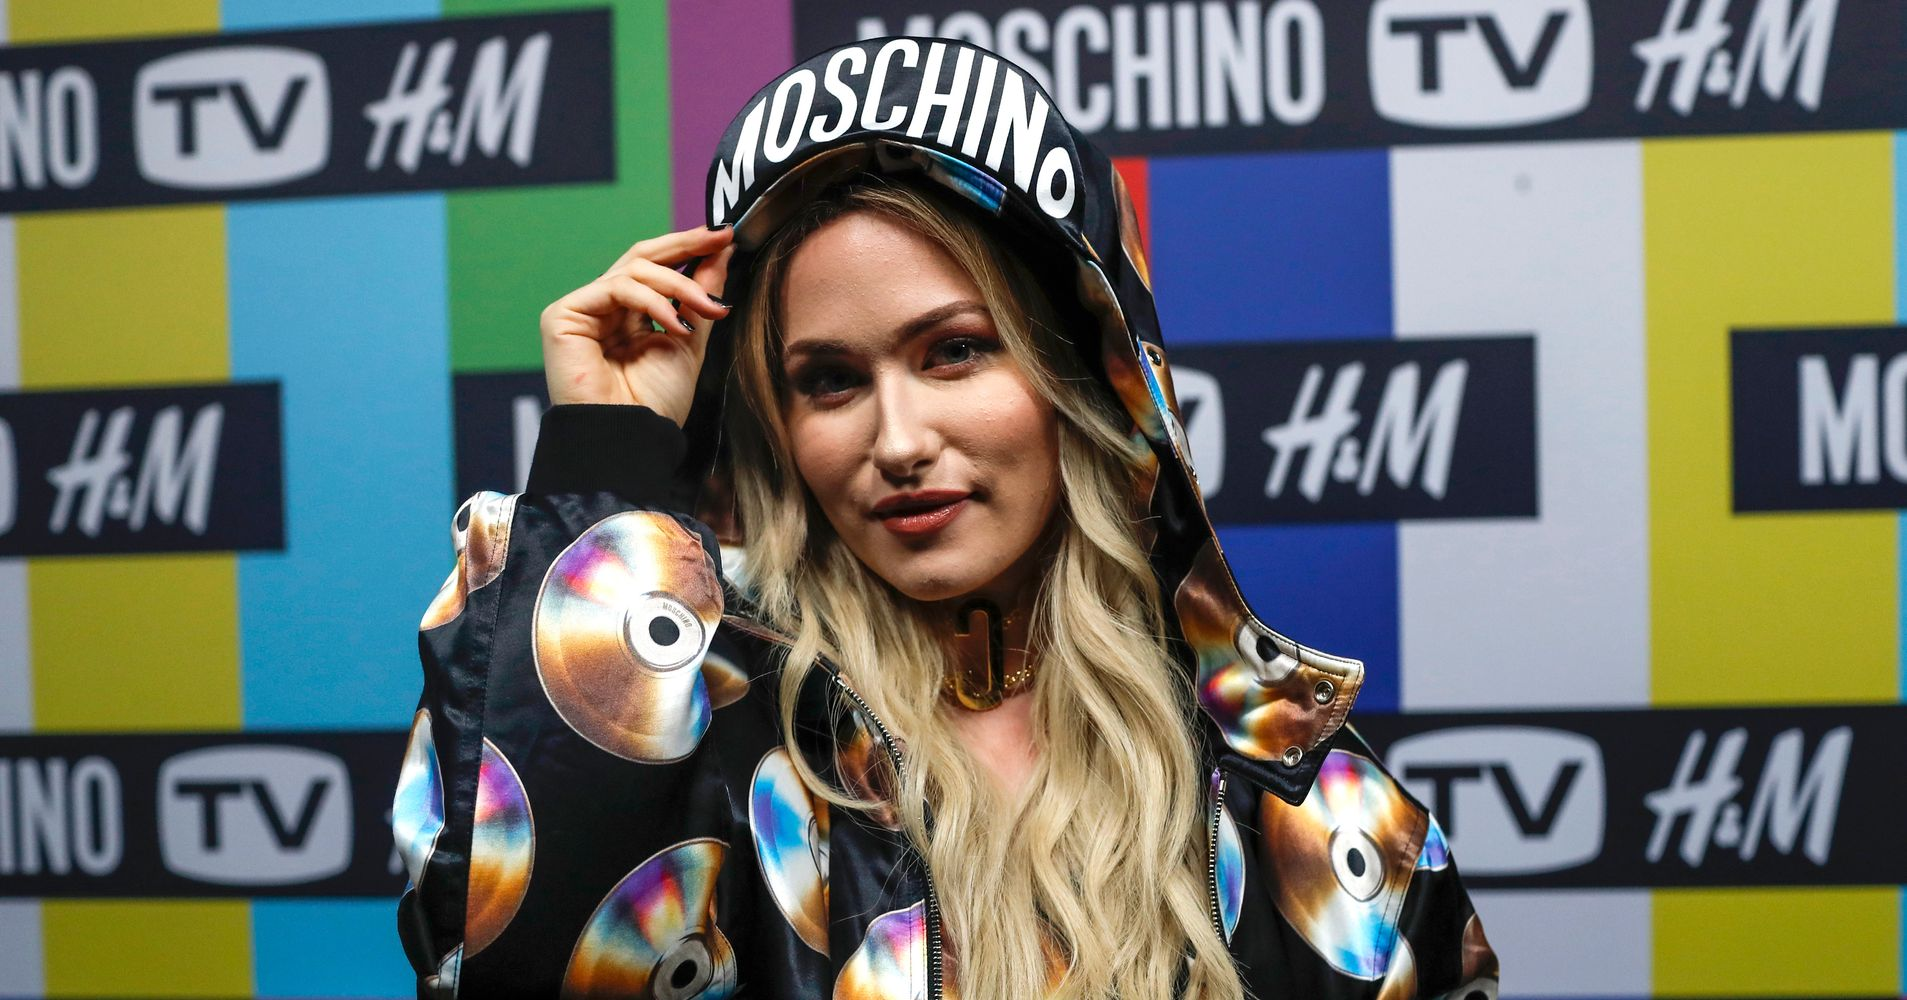 2fda78df87917 H&M's Moschino Collab Advertises With Plus-Size Model, Doesn't Offer Plus  Sizes | HuffPost Life